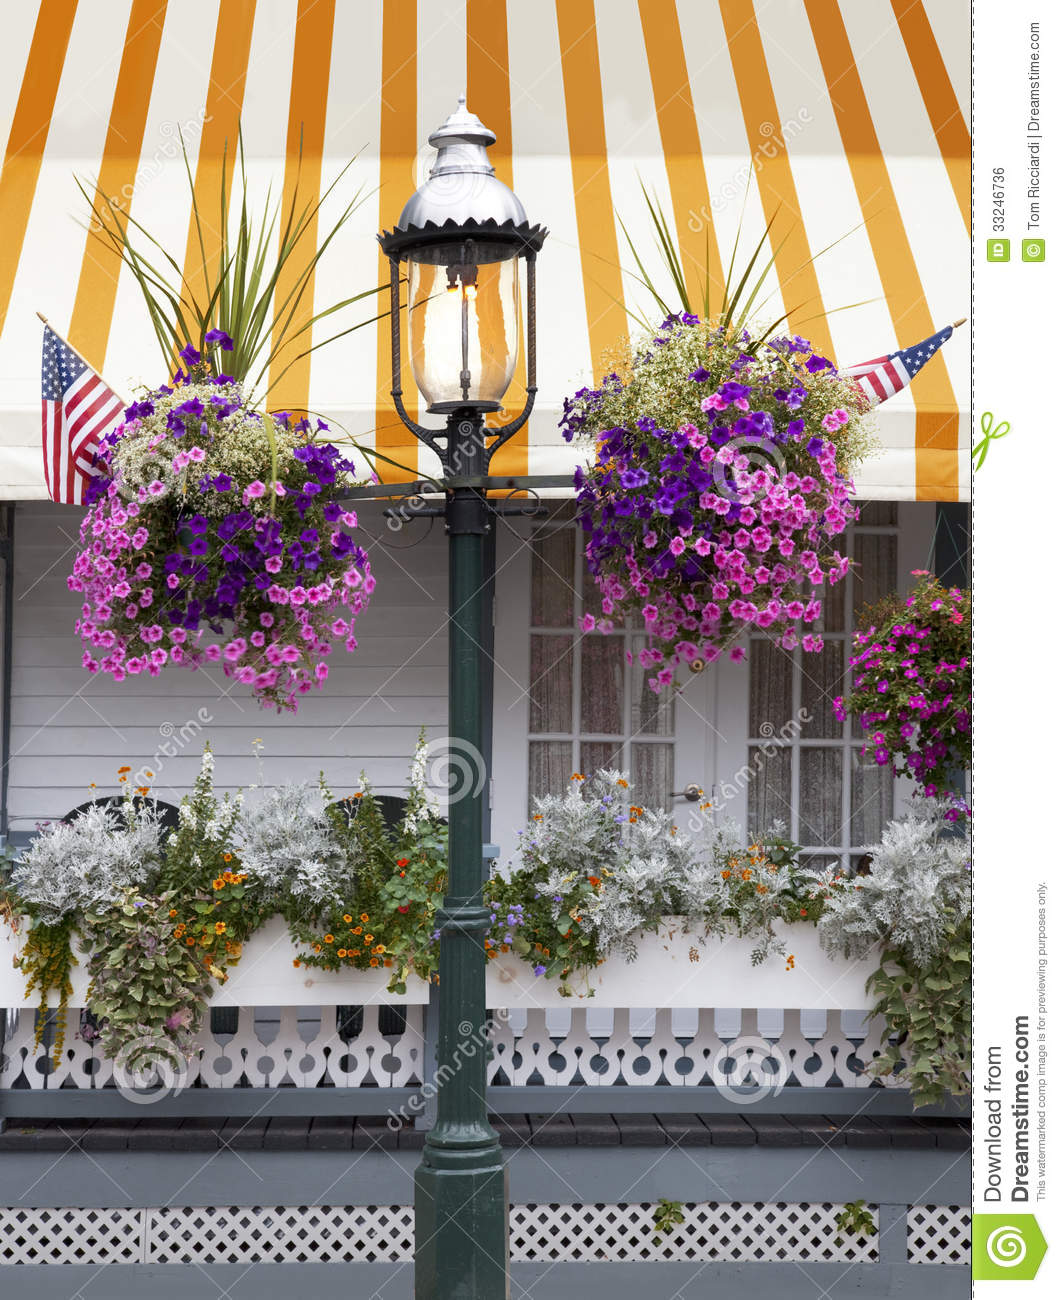 Cape May Gas Street Lamp Stock Photo Image Of Porch